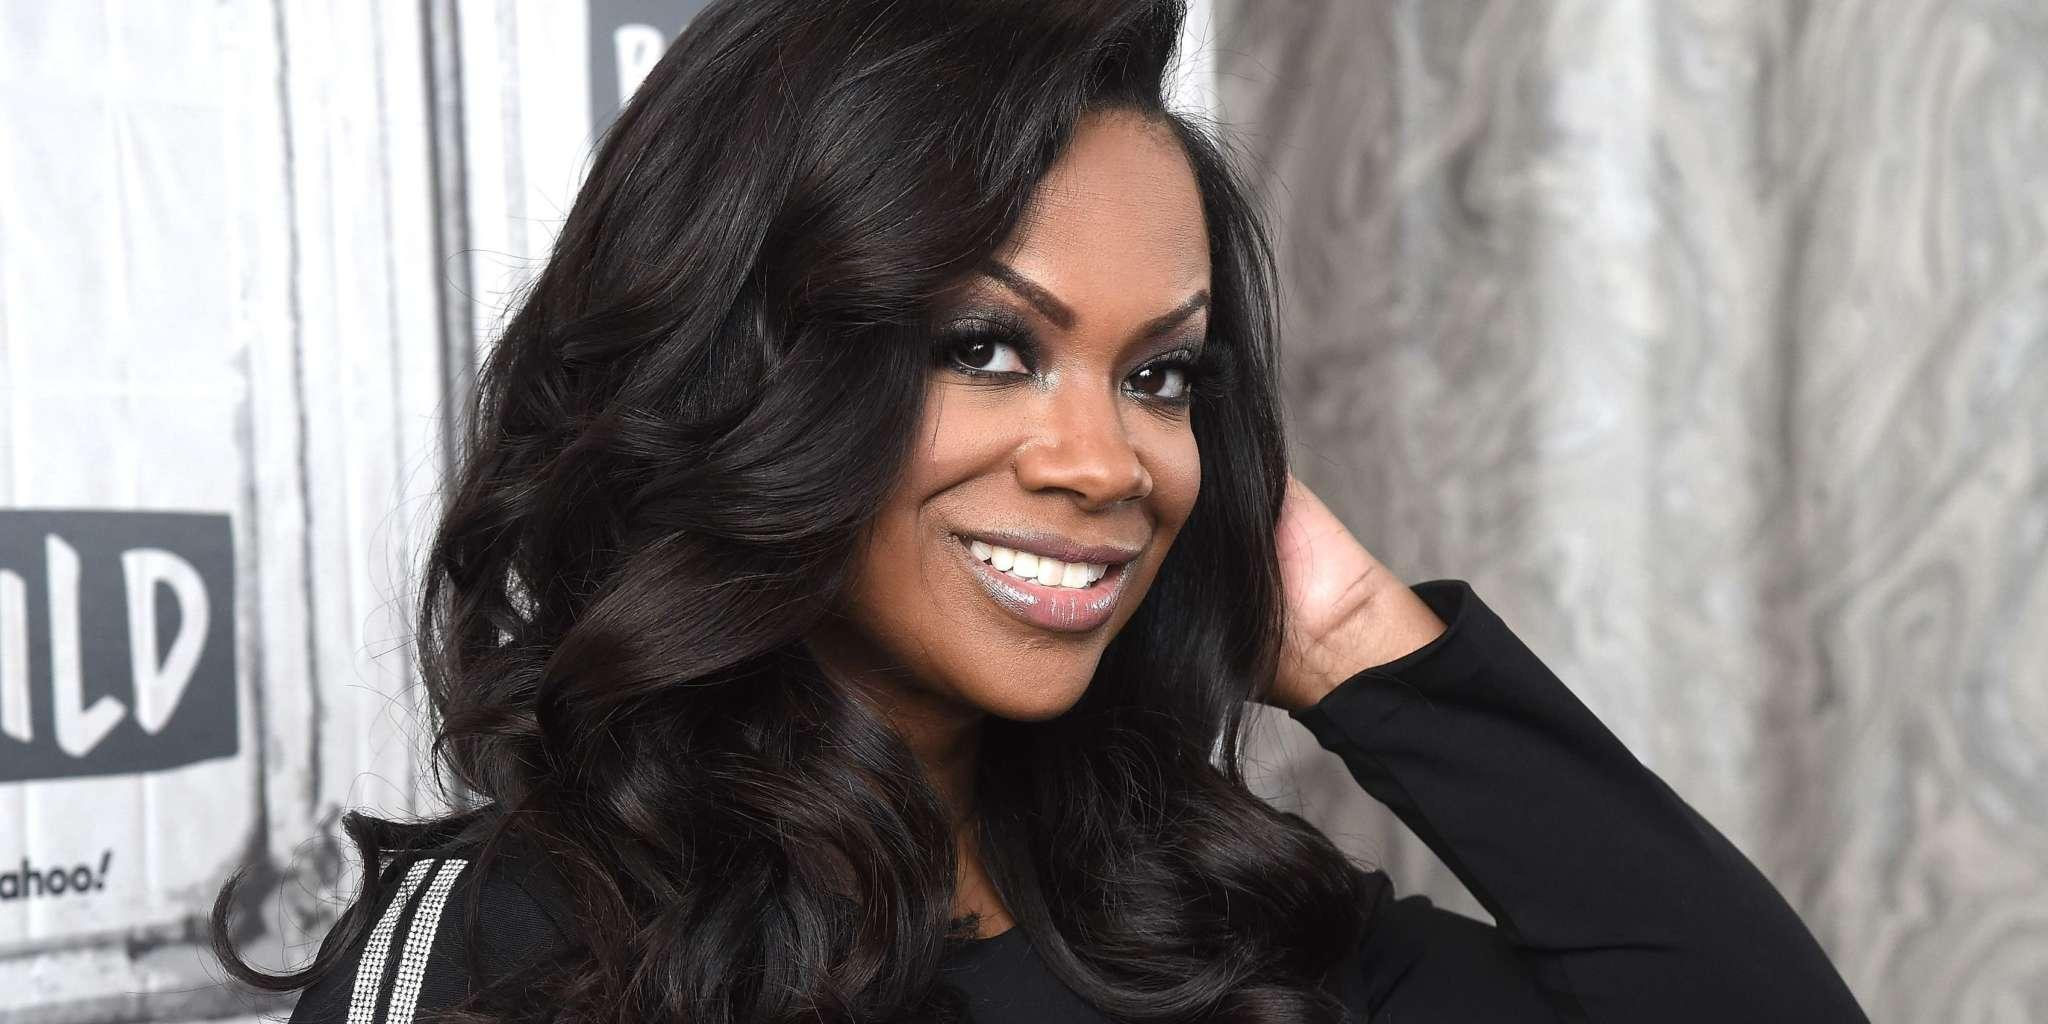 Kandi Burruss Offers Fans A Glimpse Of The Next Episode Of 'The Chi'